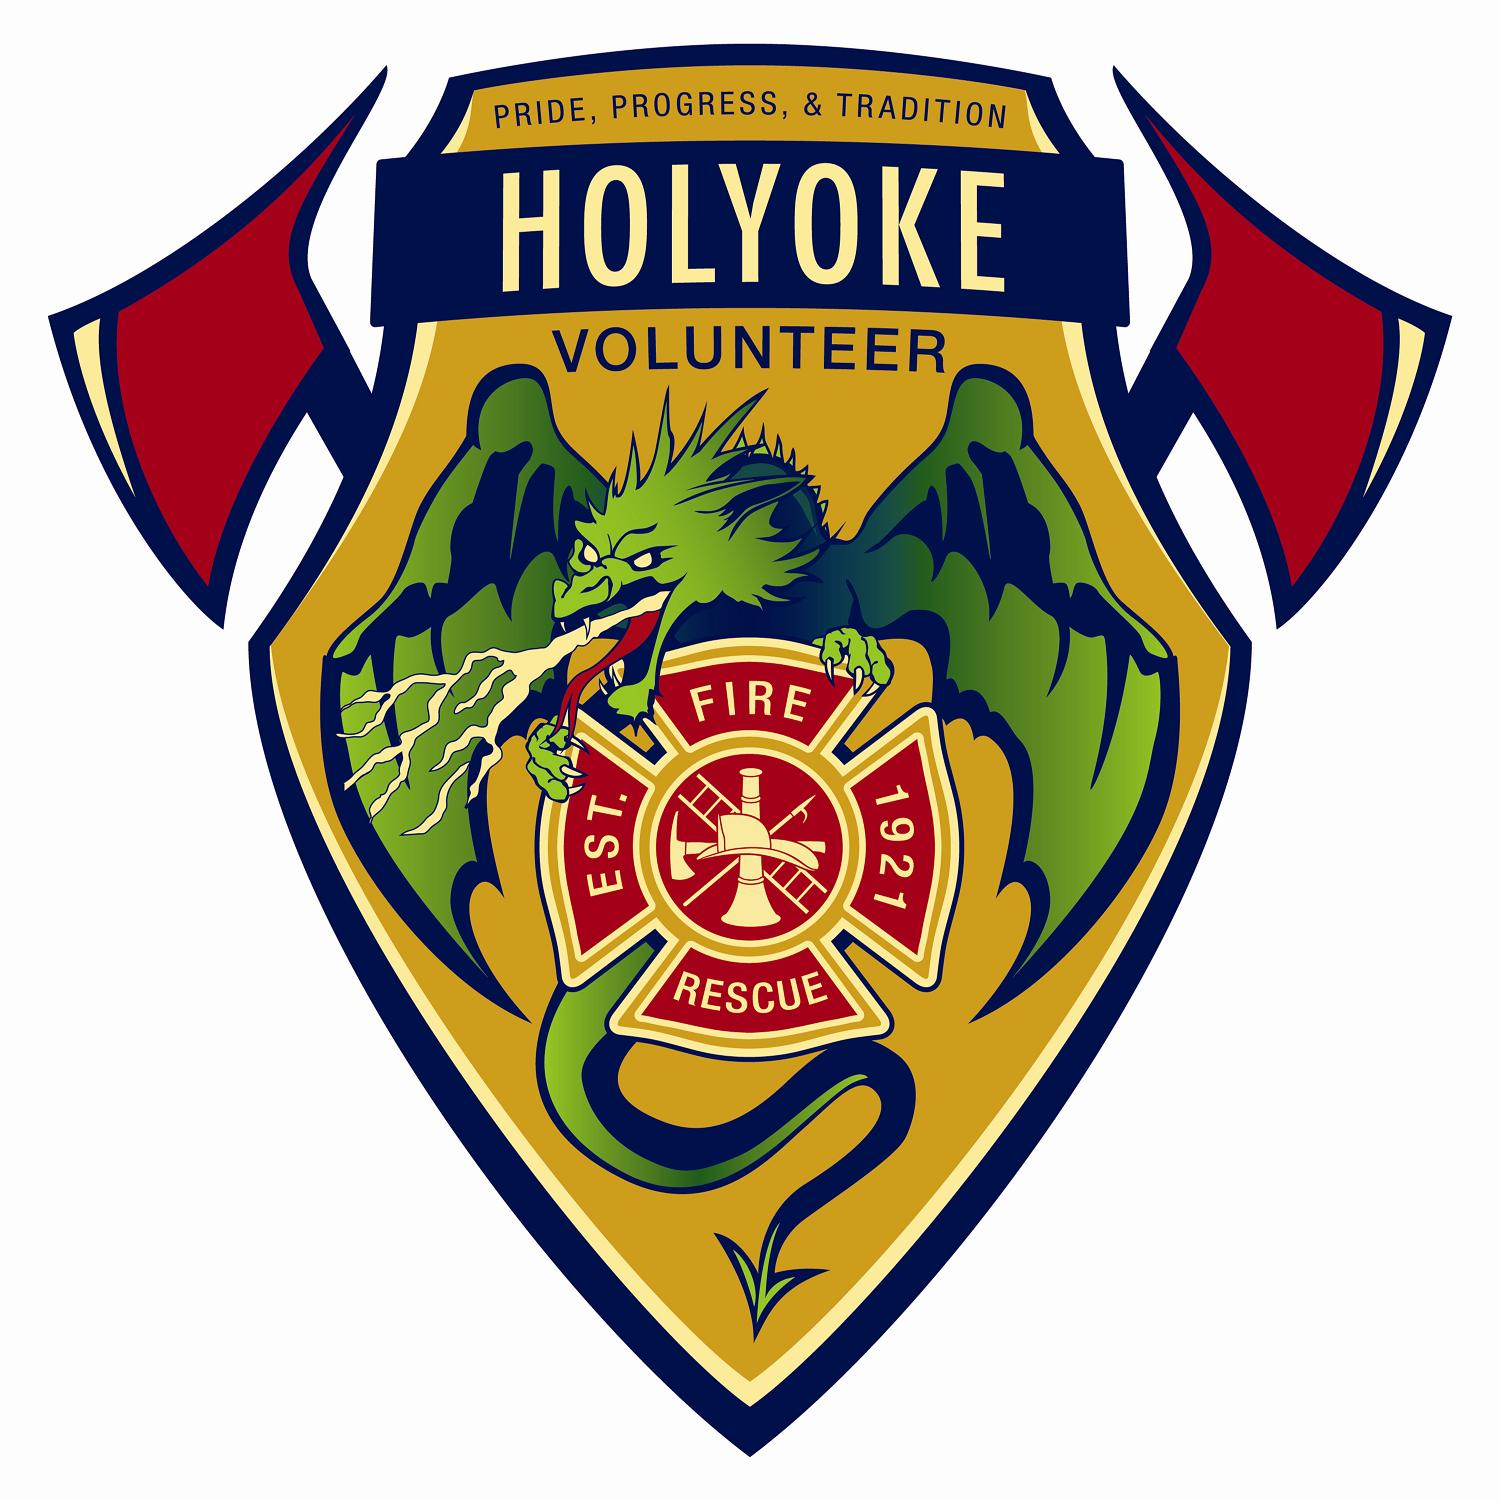 holyoke dating site Personal ads for holyoke, ma are a great way to find a life partner, movie date, or a quick hookup personals are for people local to holyoke, ma and are for ages 18.